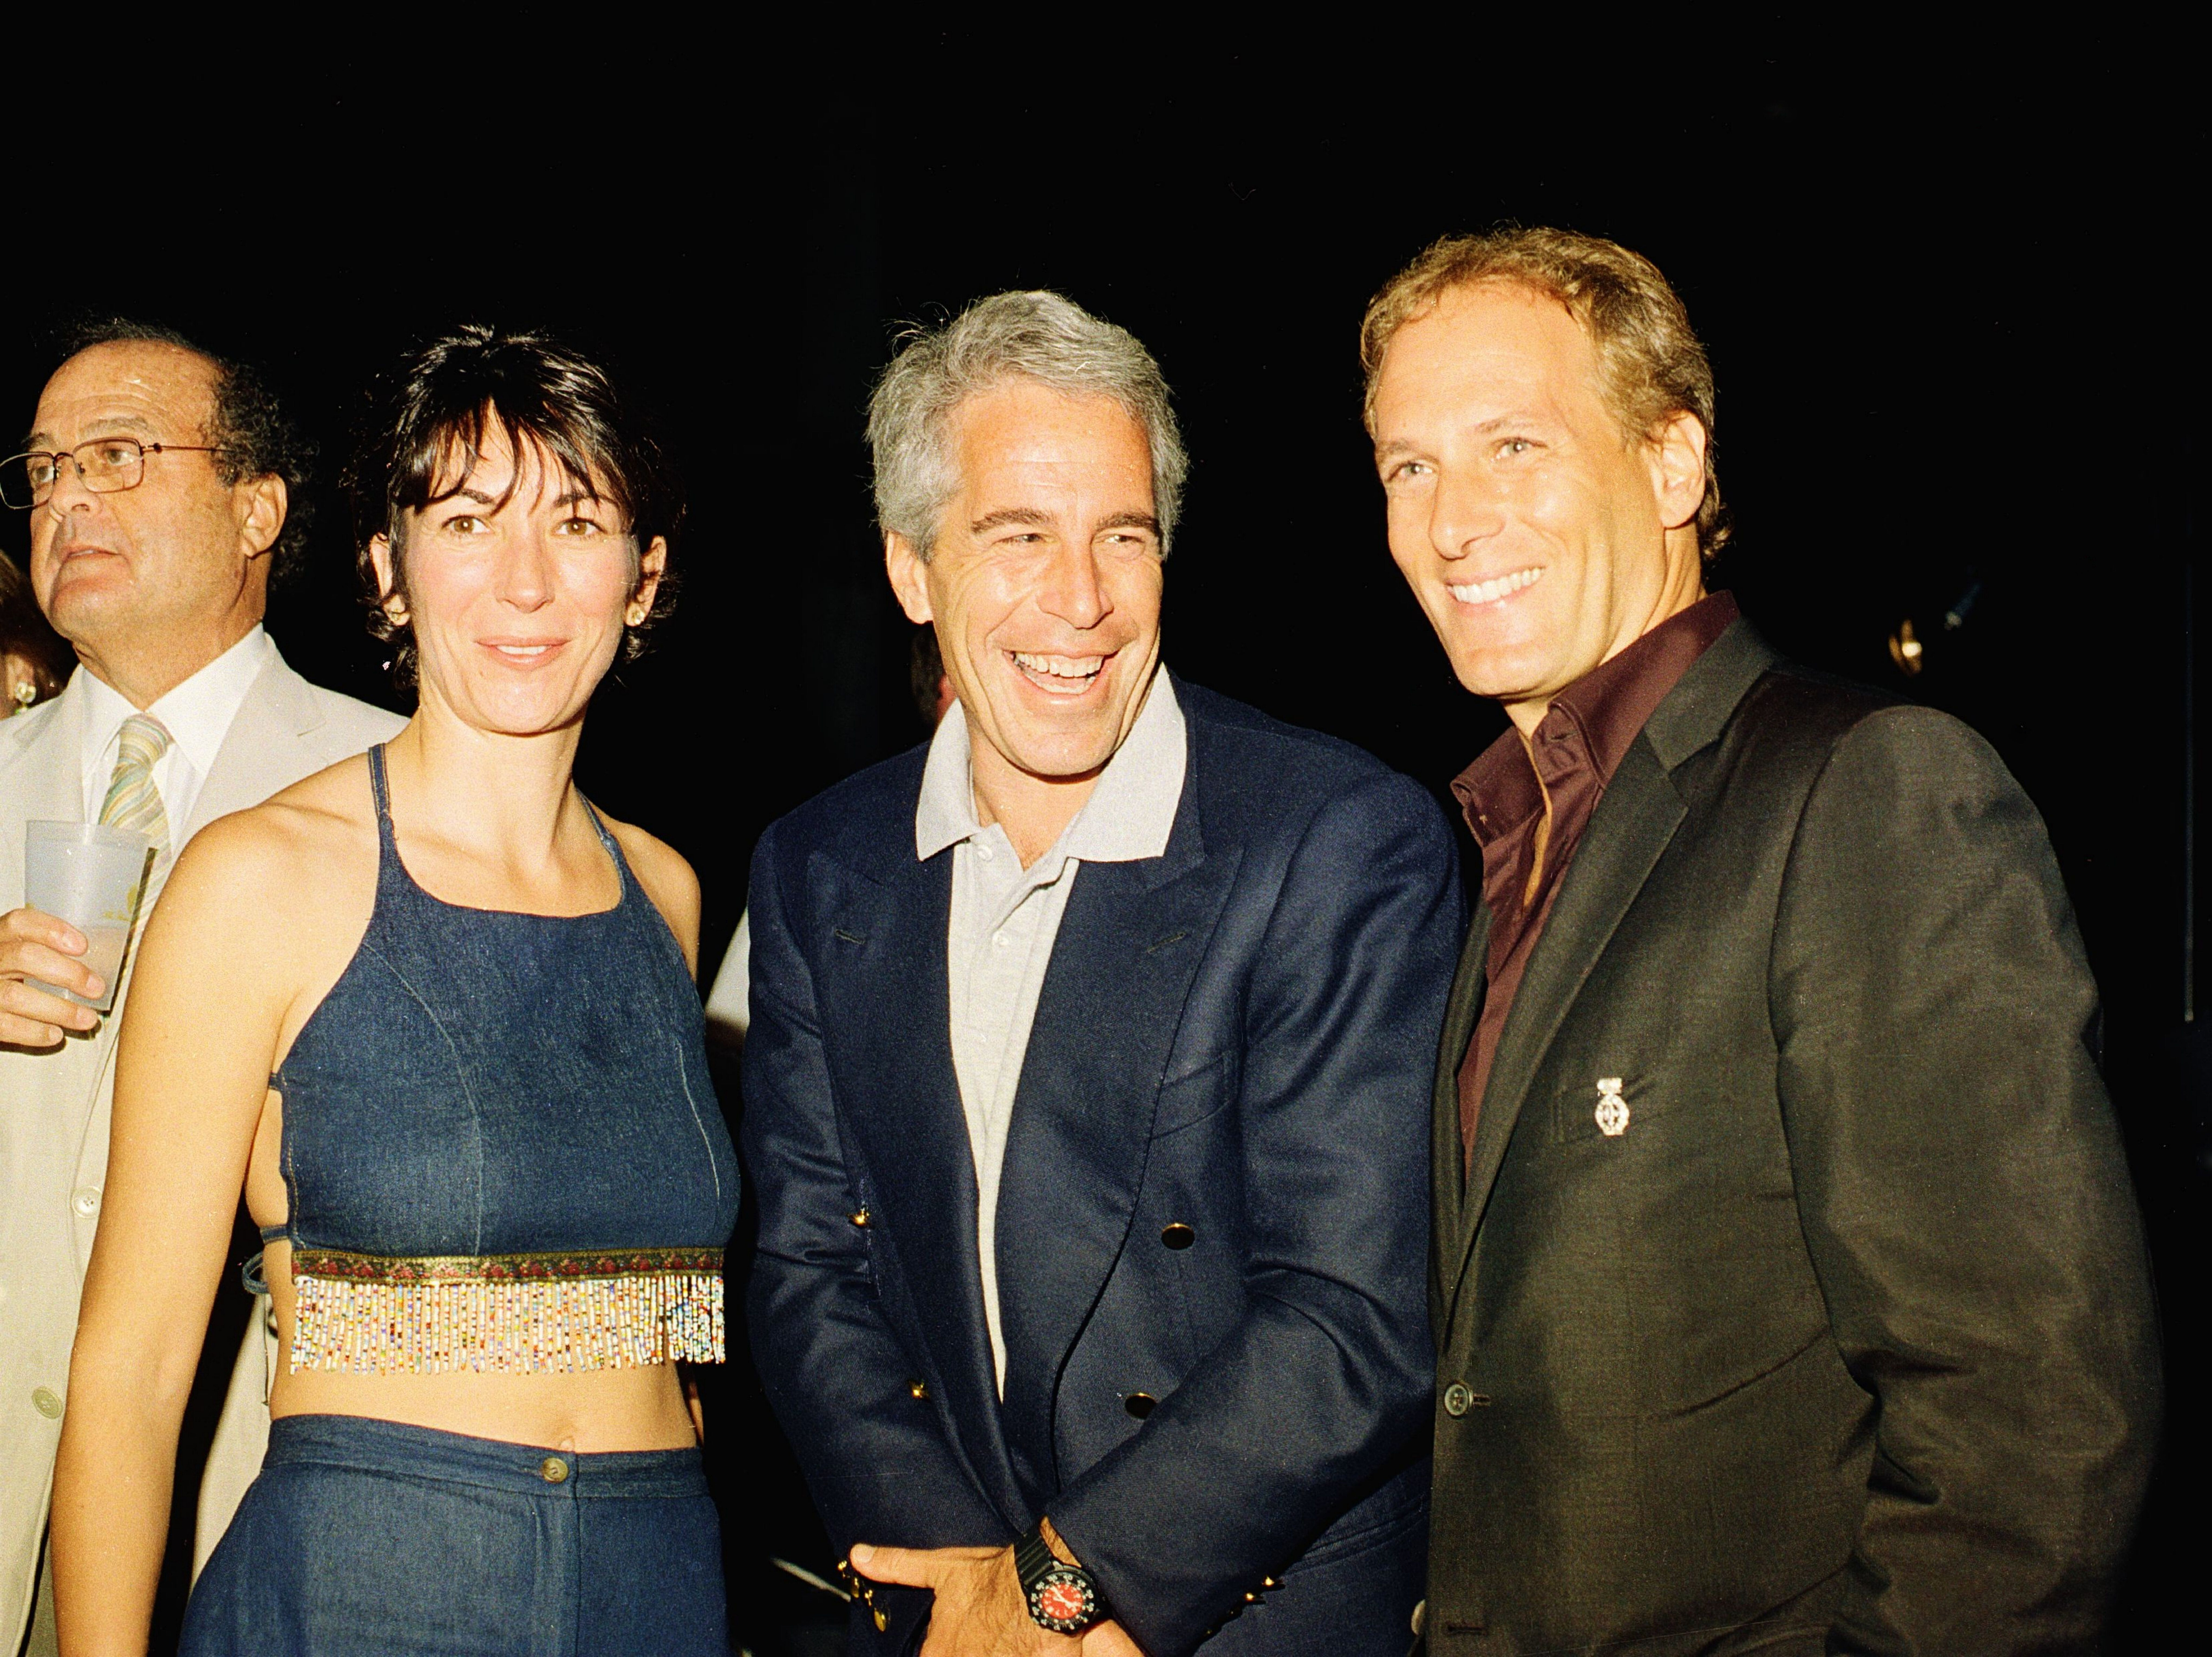 Ghislaine Maxwell and Jeffrey Epstein are seen during a party at ex-President Donald Trump's Mar-a-Lago club in Florida in 20